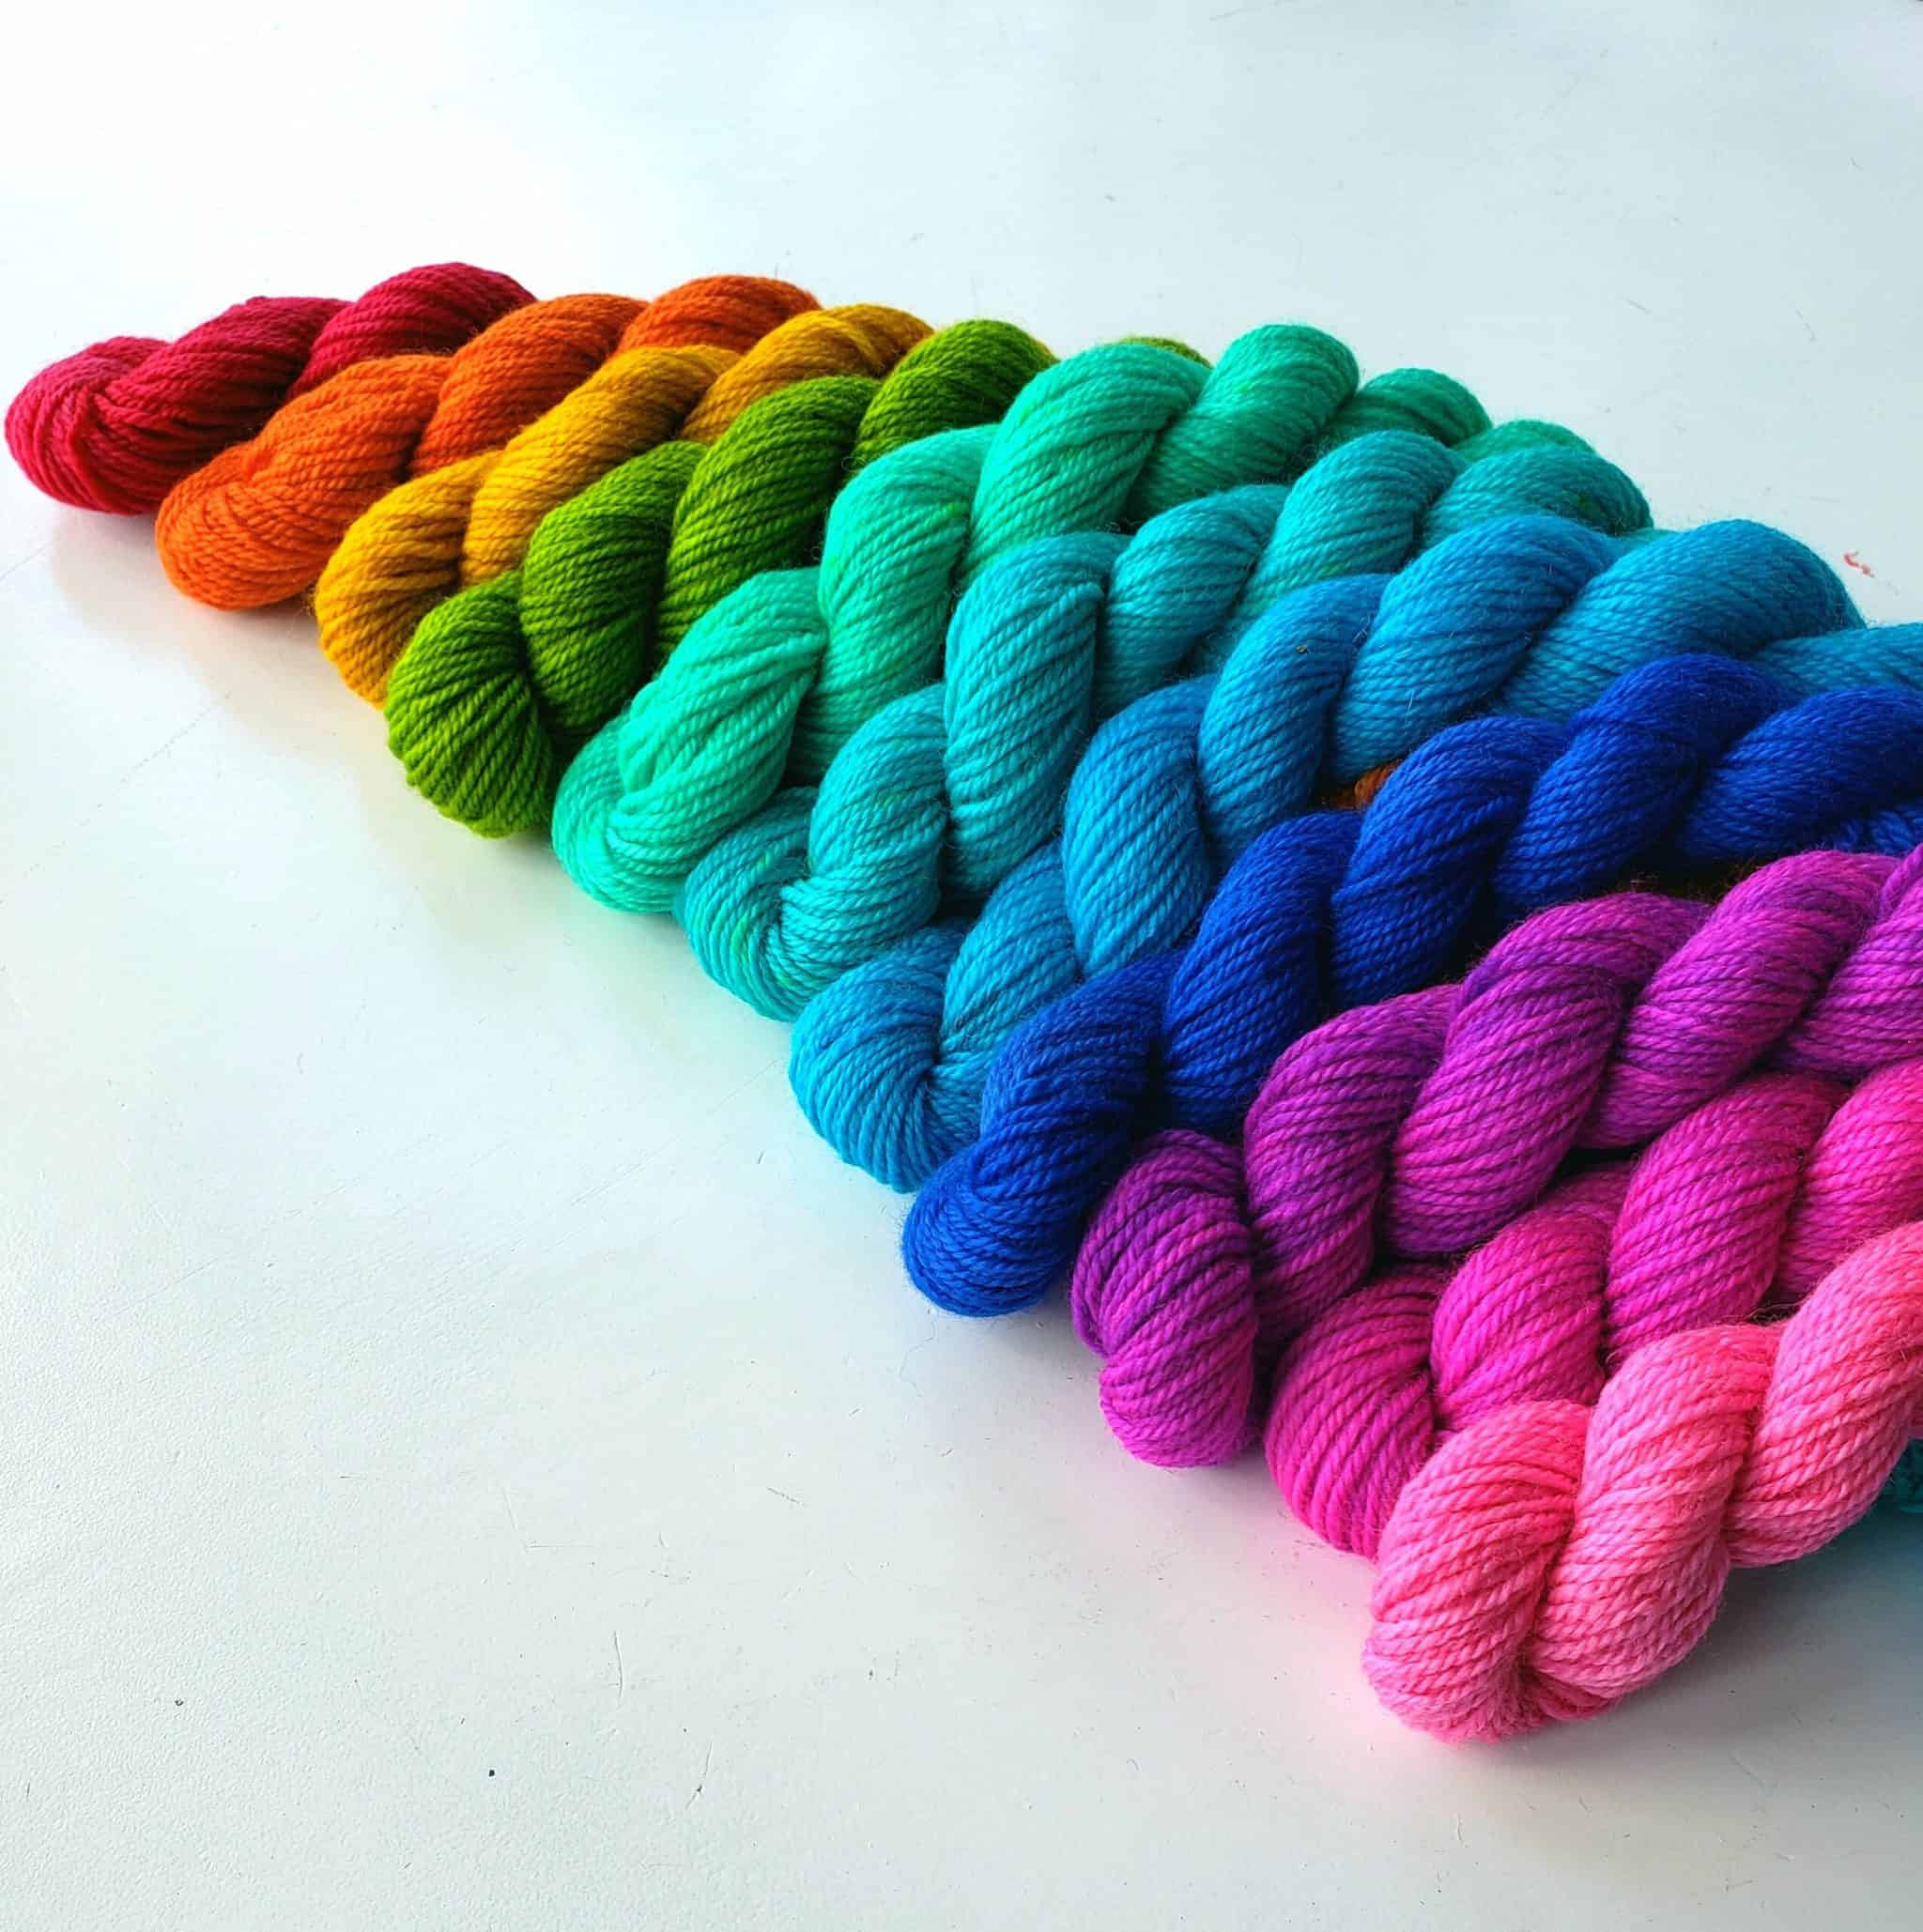 Skeins of yarn in a rainbow of colors.